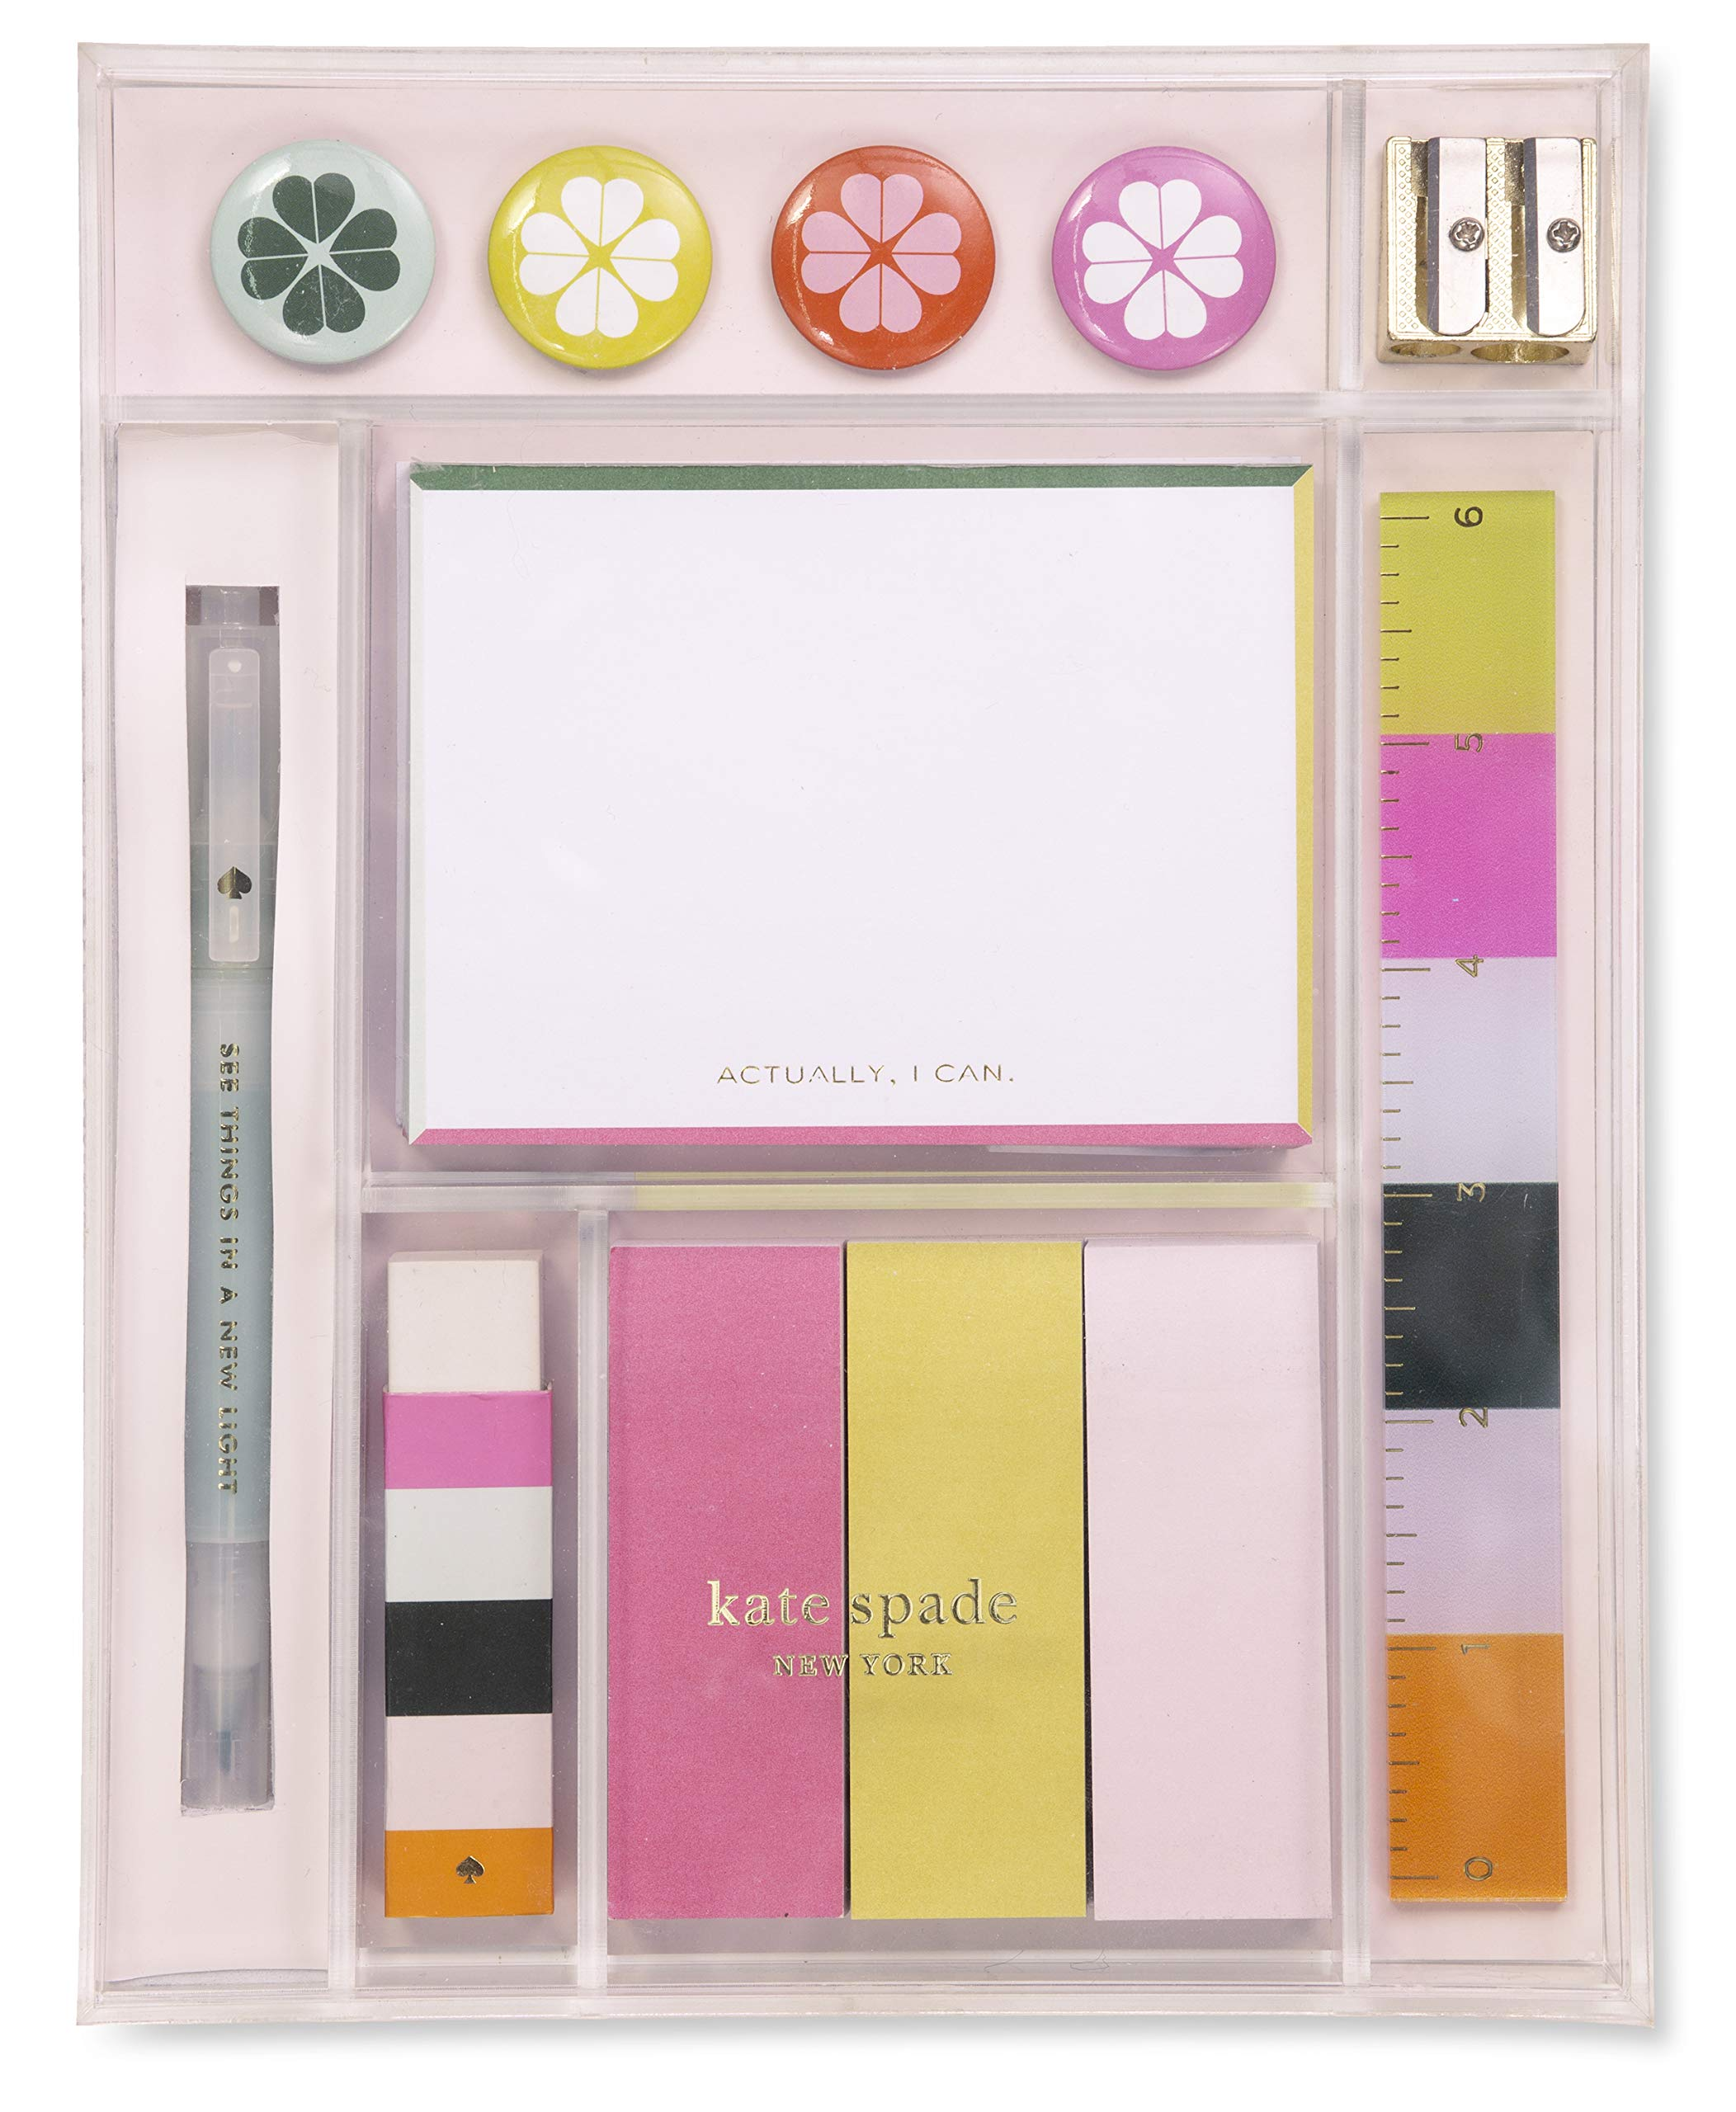 Kate Spade New York Women's Office Supplies Tackle Box Desk Organizer, Actually I Can by Kate Spade New York